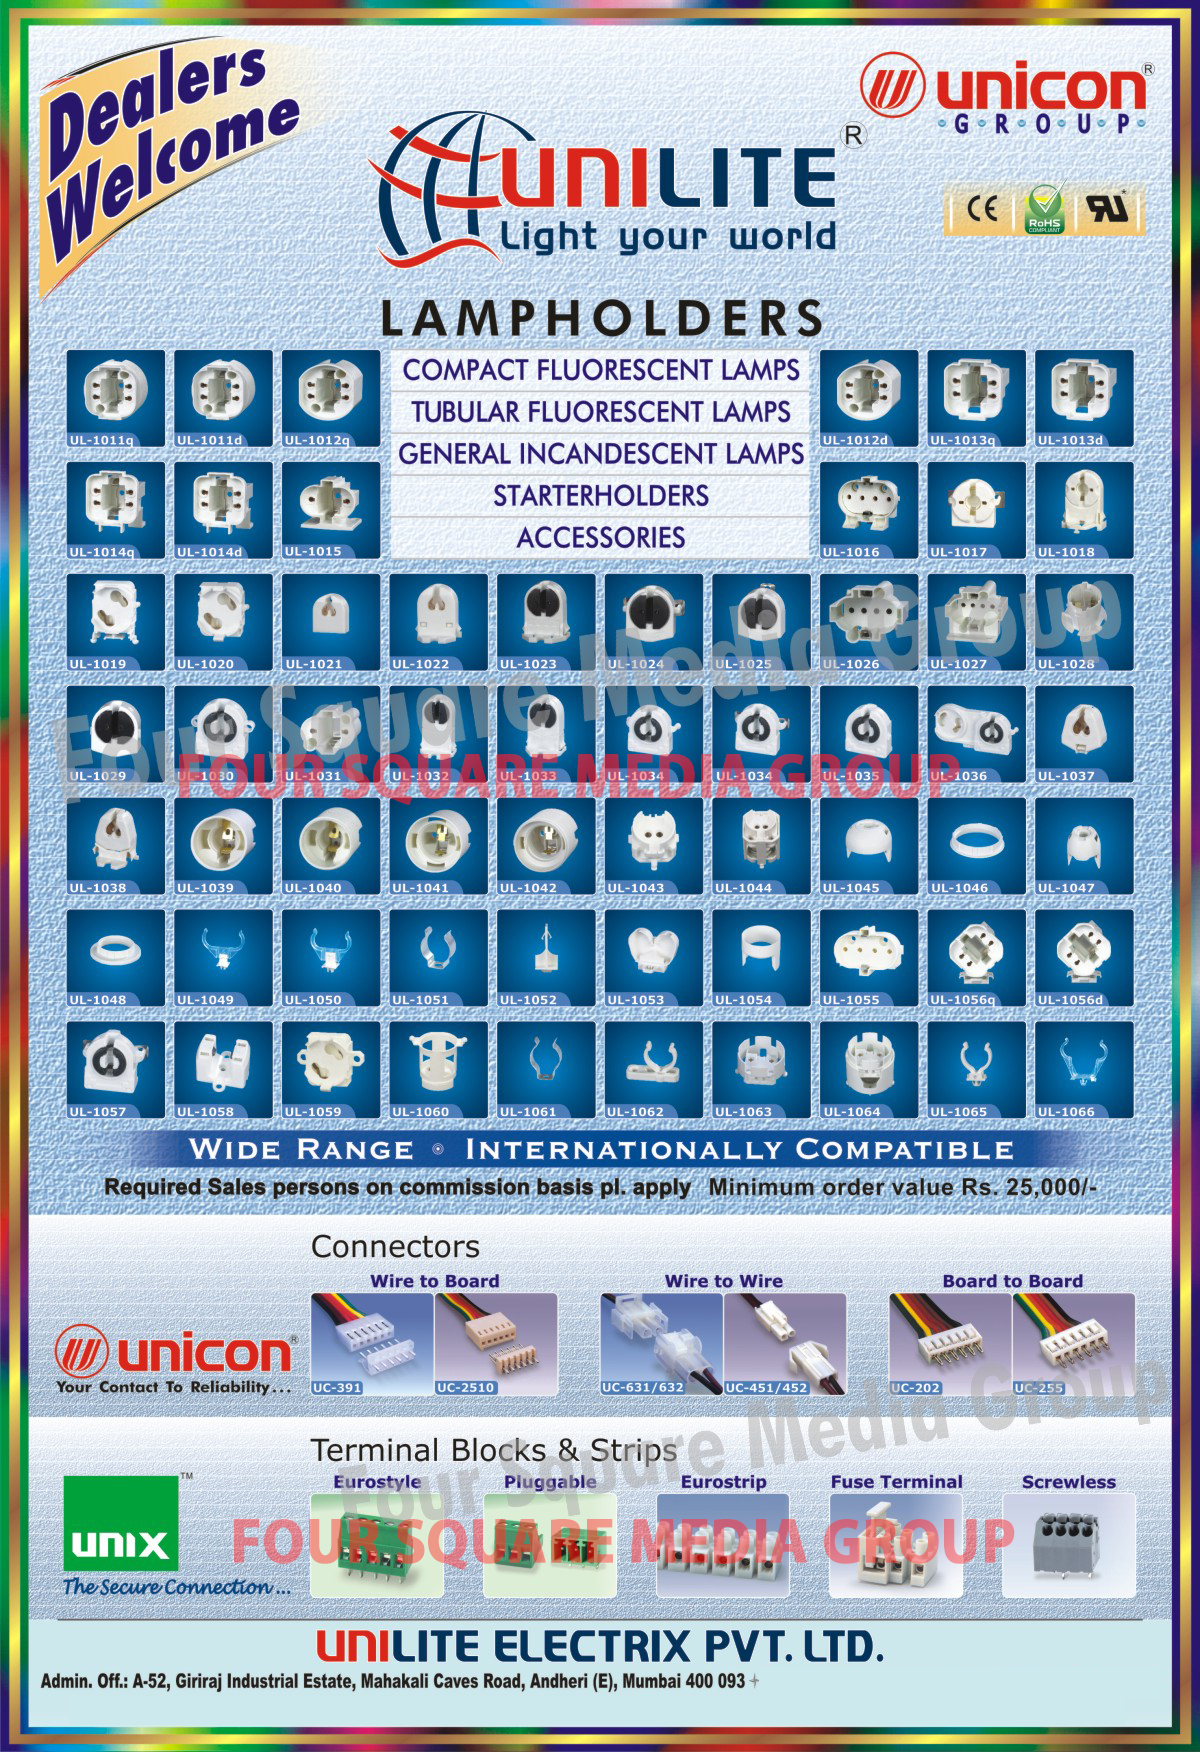 CFL Lamp Holders, Tubular Fluorescent Lamp Holders, General Incandescent Lamp Holders, Starter Holders, Connectors, Terminal Blocks, Terminal Strips, Fuse Terminals, Electrical Accessories